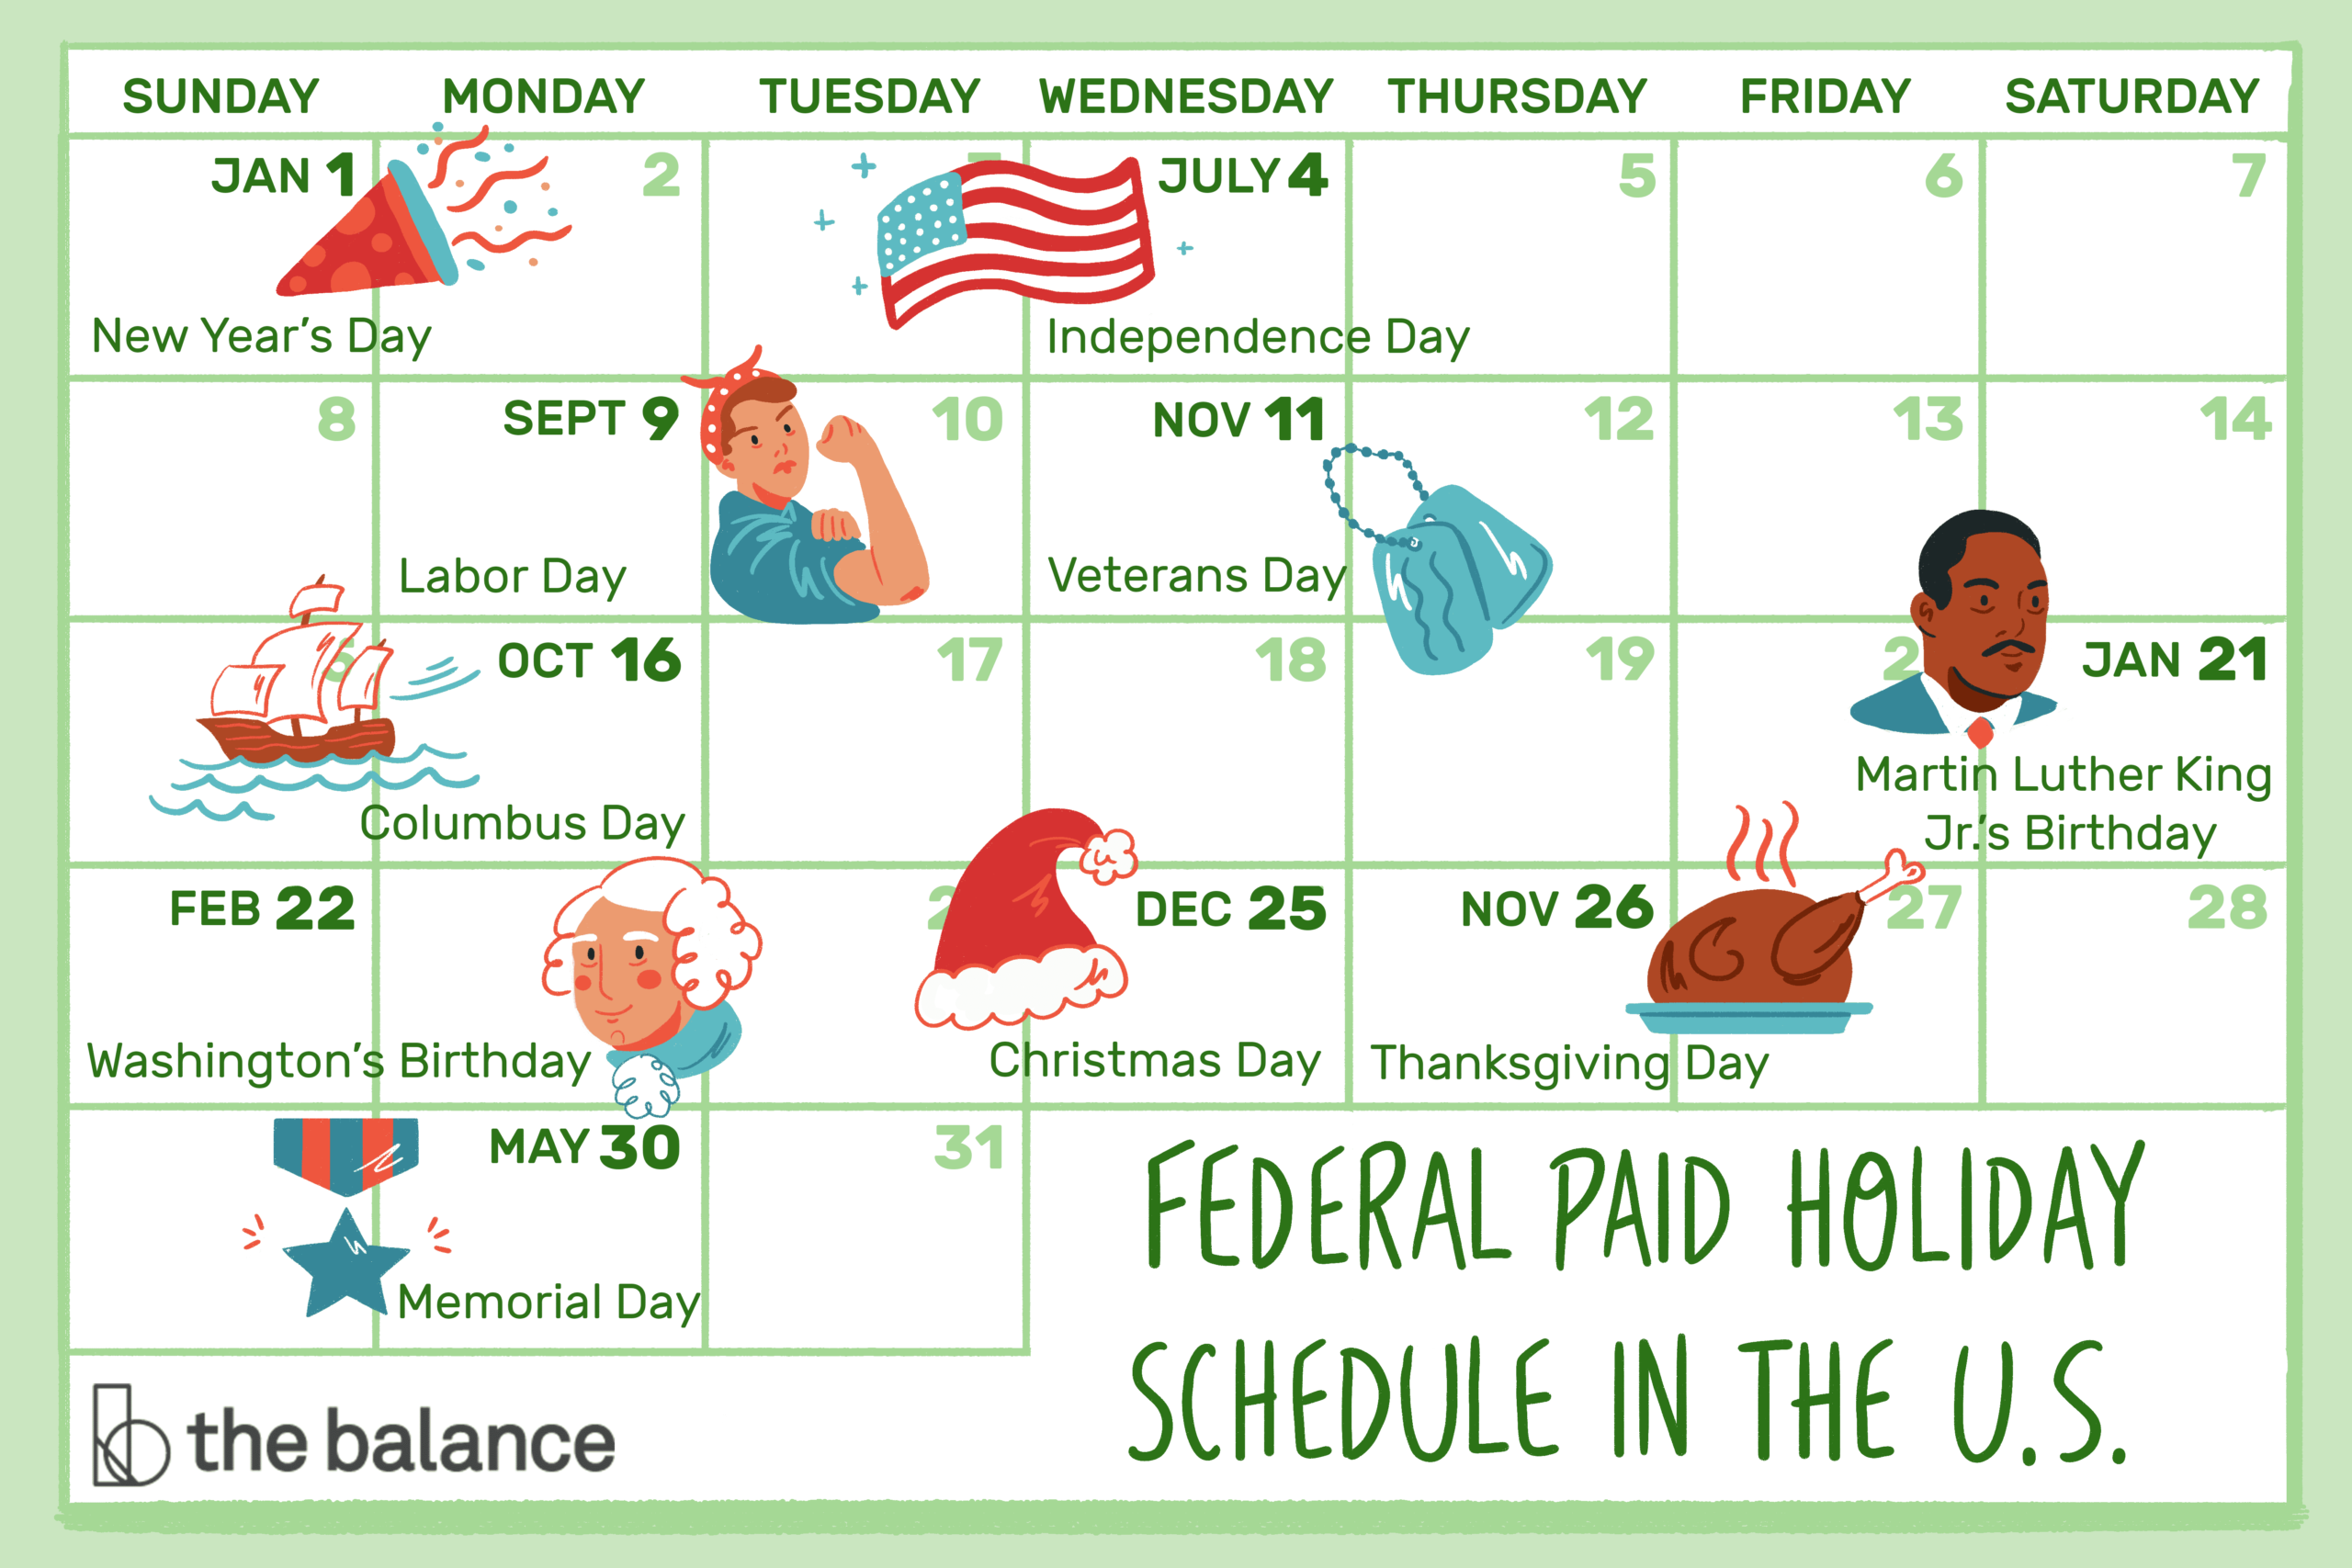 What'S A Typical Paid Holiday Schedule In The U.s.?